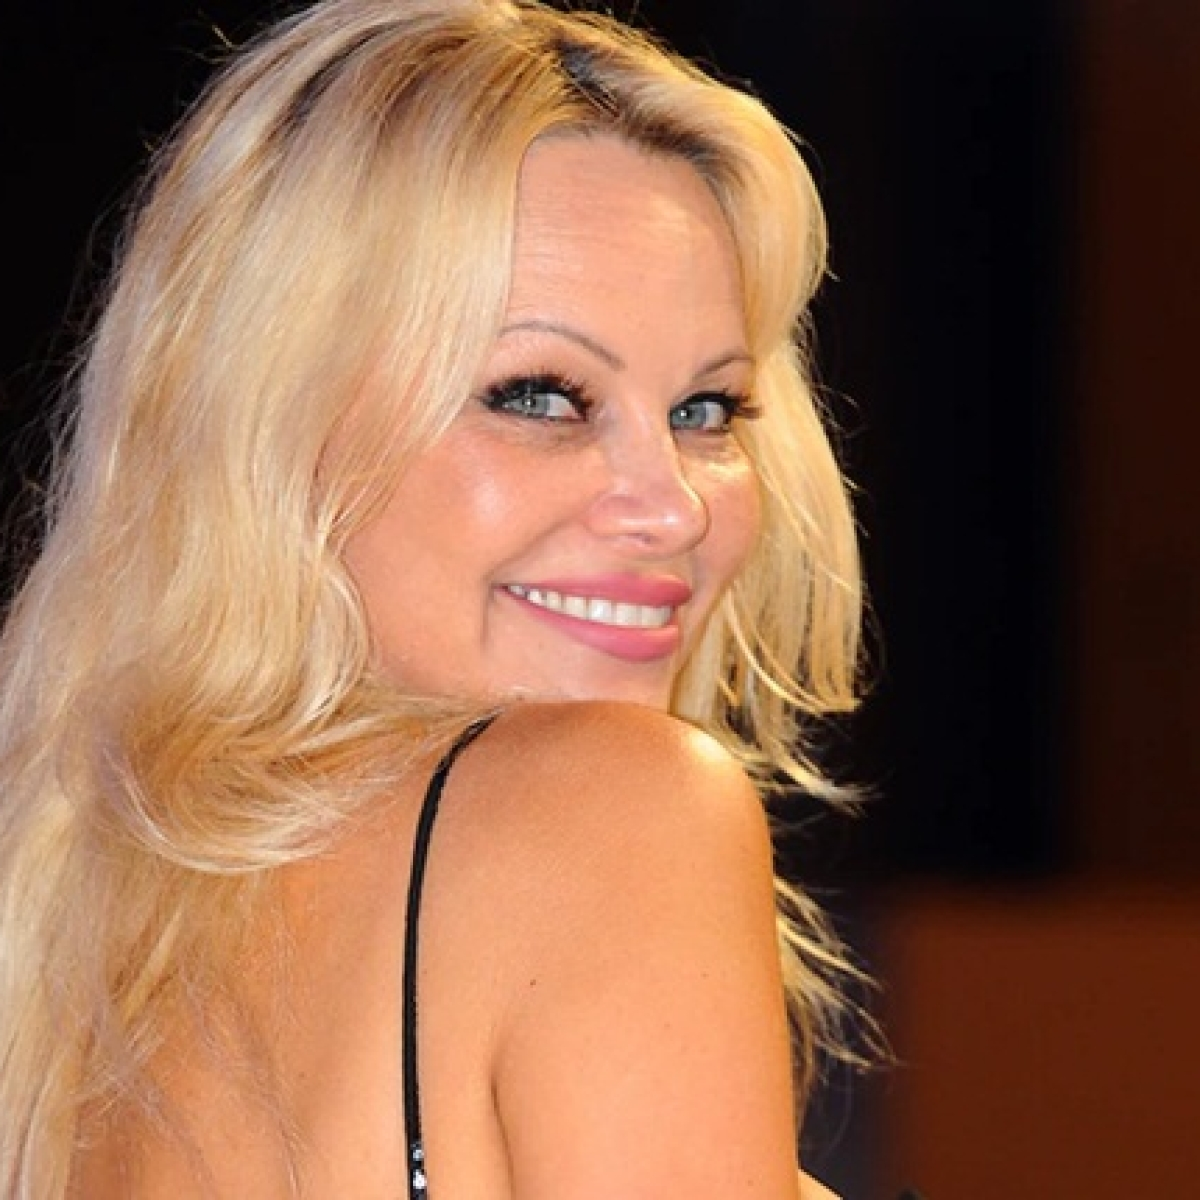 After 3 failed marriages, Pamela Anderson ready to tie the knot again